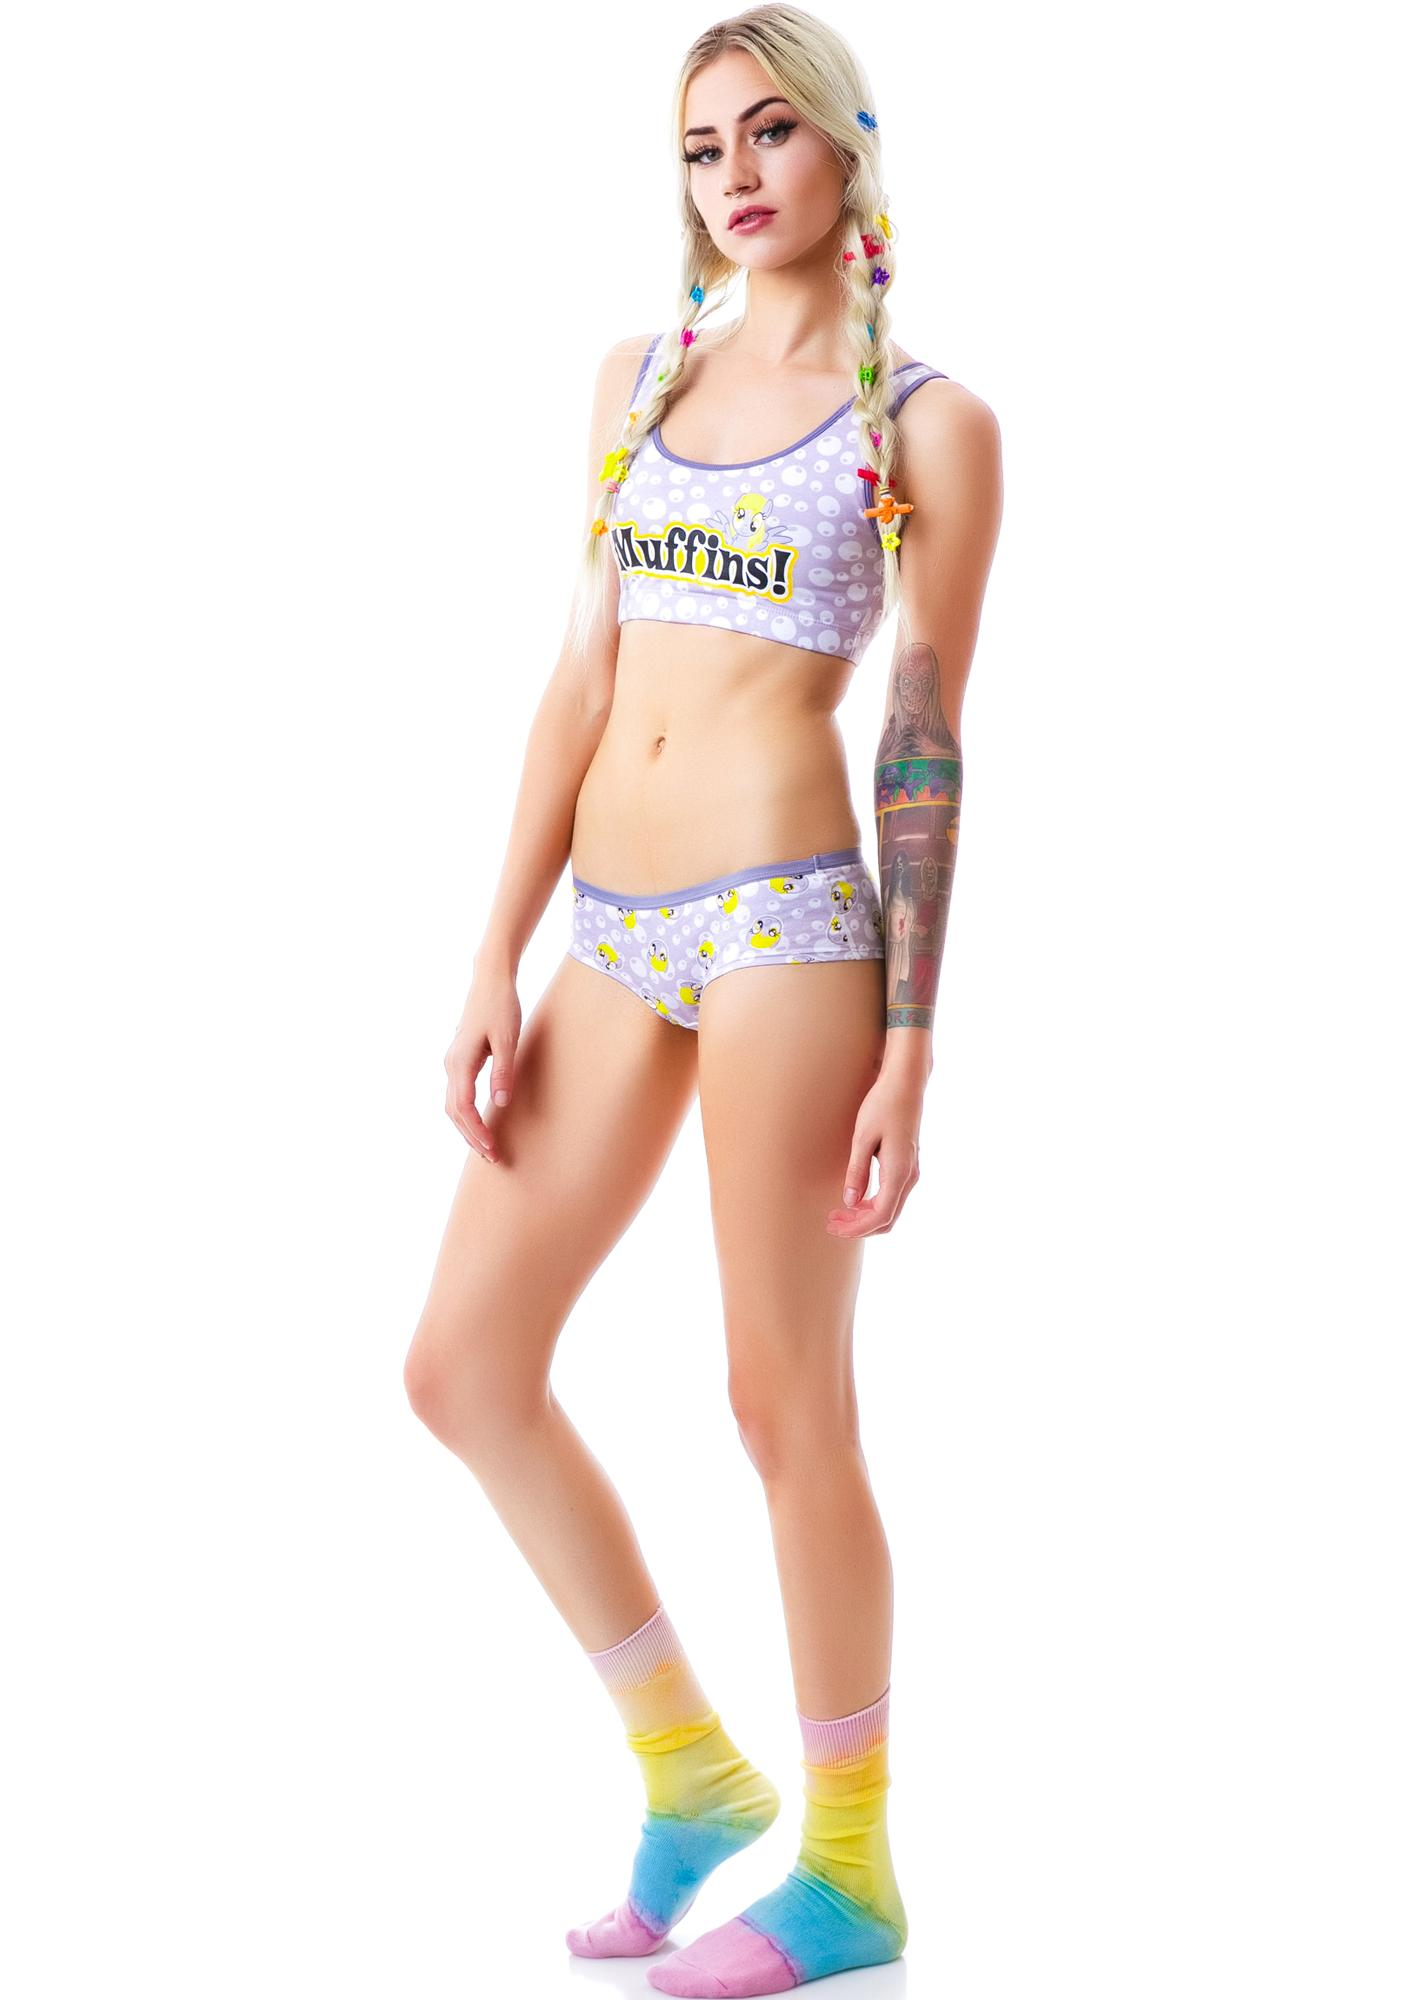 Undergirl Muffins Little Pony Sports Bra